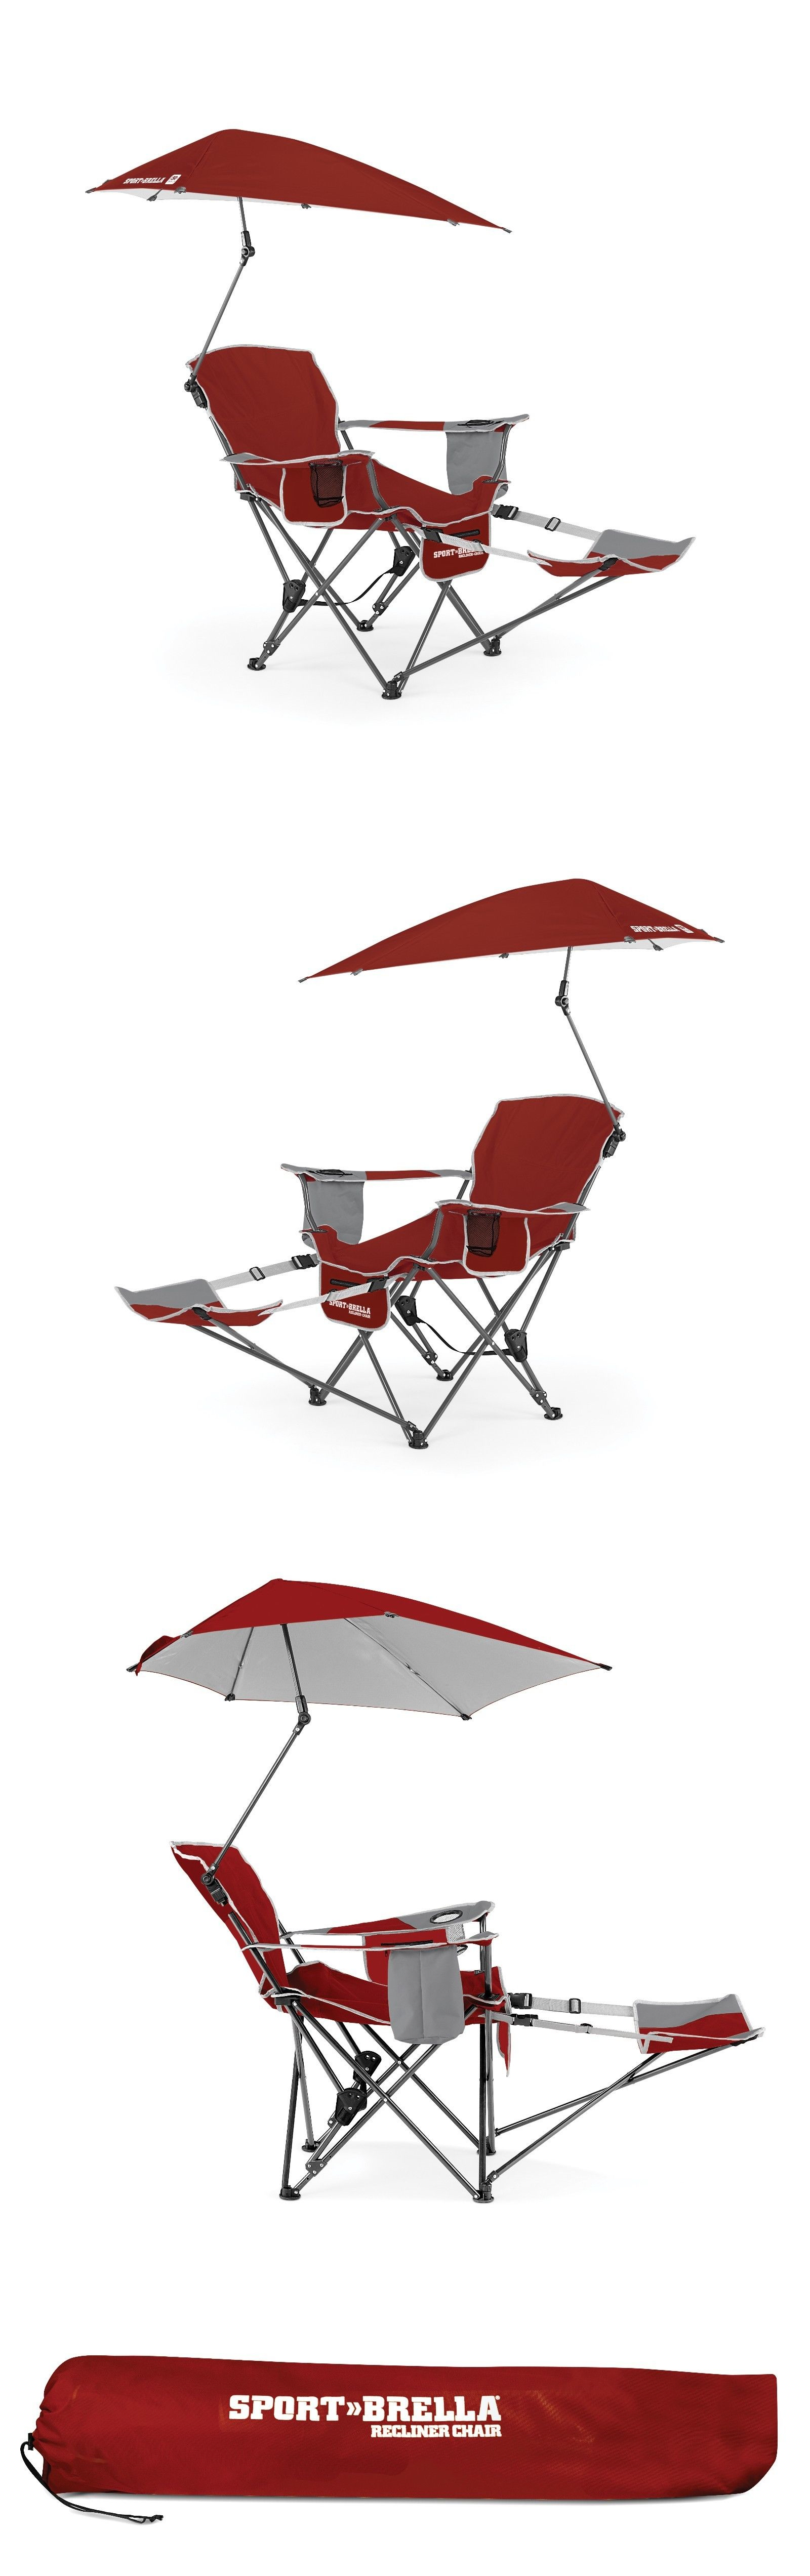 C&ing Furniture 16038 Sport-Brella Recliner Chair | Firebrick Red - Reclining Sport Chair  sc 1 th 249 & Camping Furniture 16038: Sport-Brella Recliner Chair | Firebrick Red ...